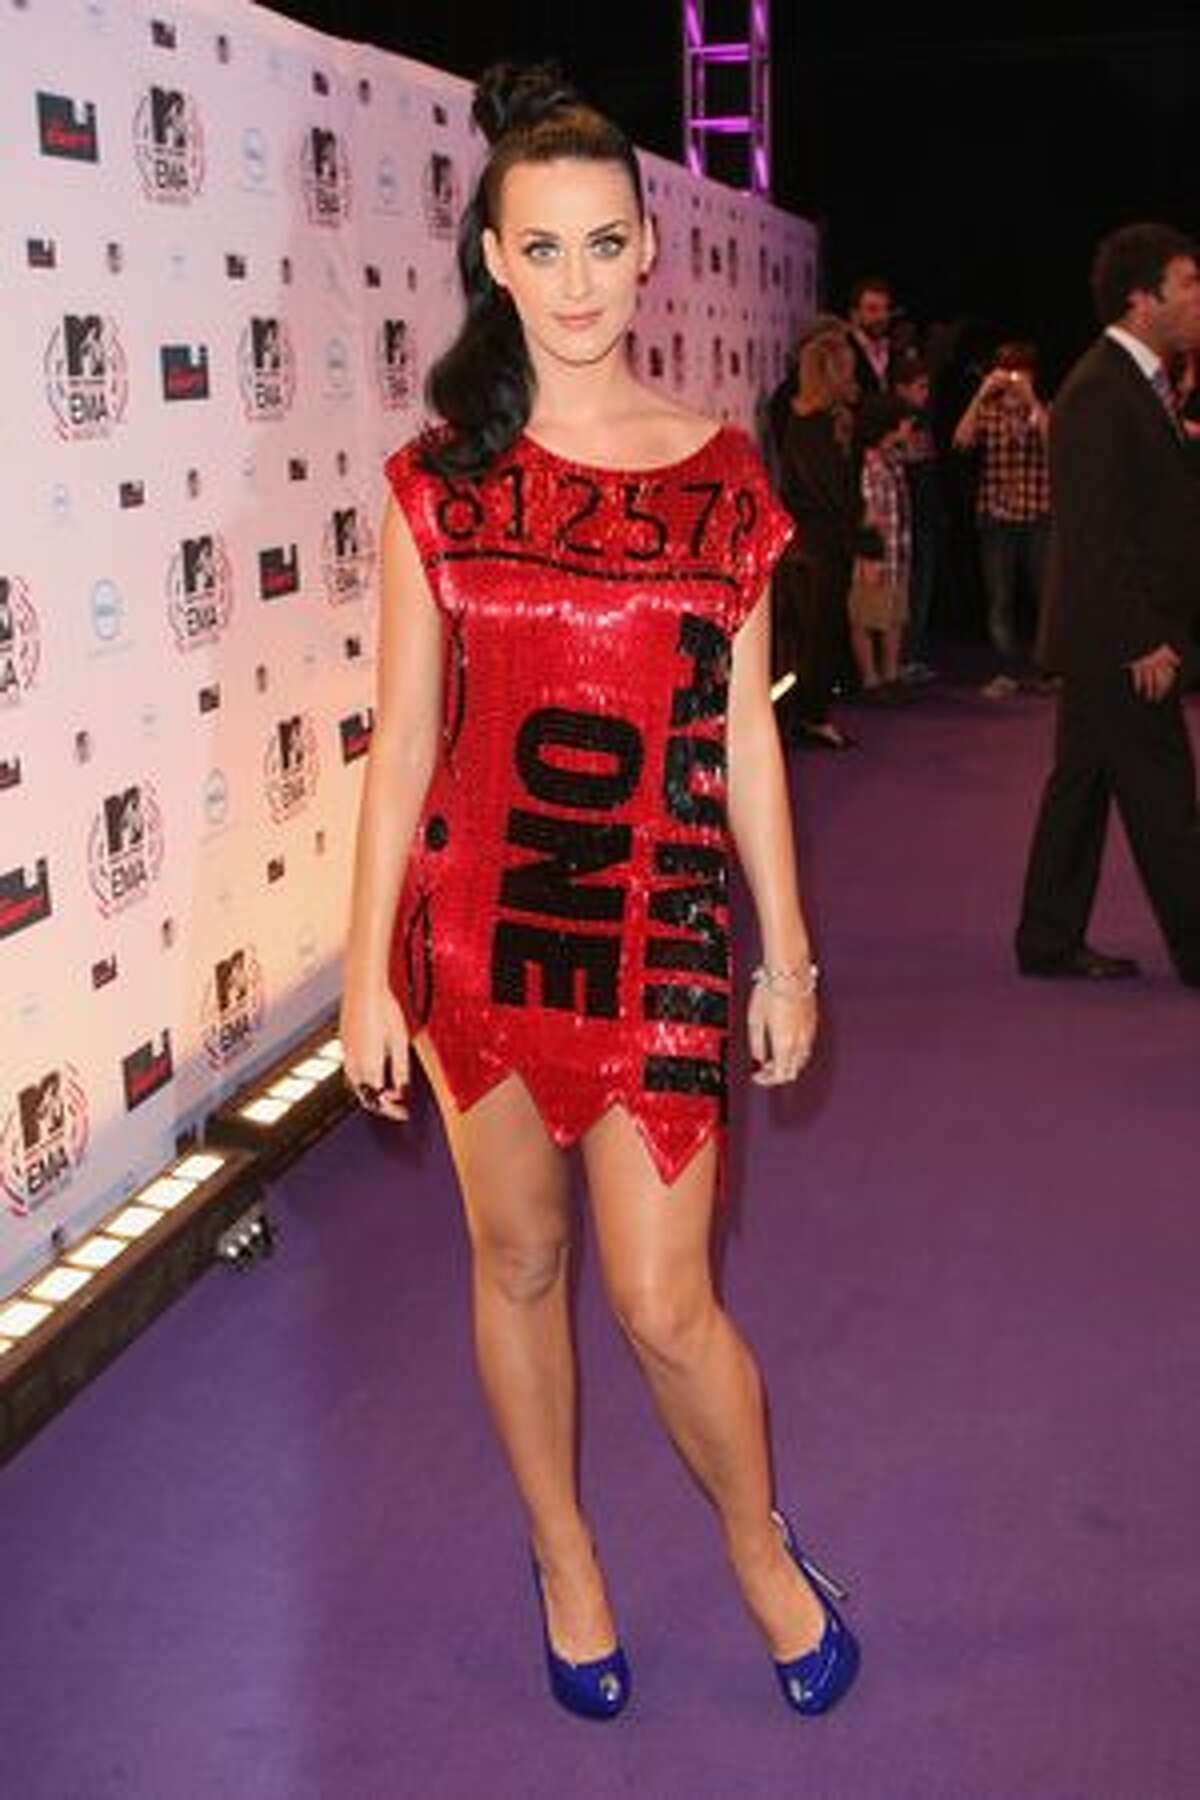 Katy Perry arrives at the MTV Europe Awards 2010 at the La Caja Magica in Madrid, Spain, on Sunday, Nov. 7, 2010.